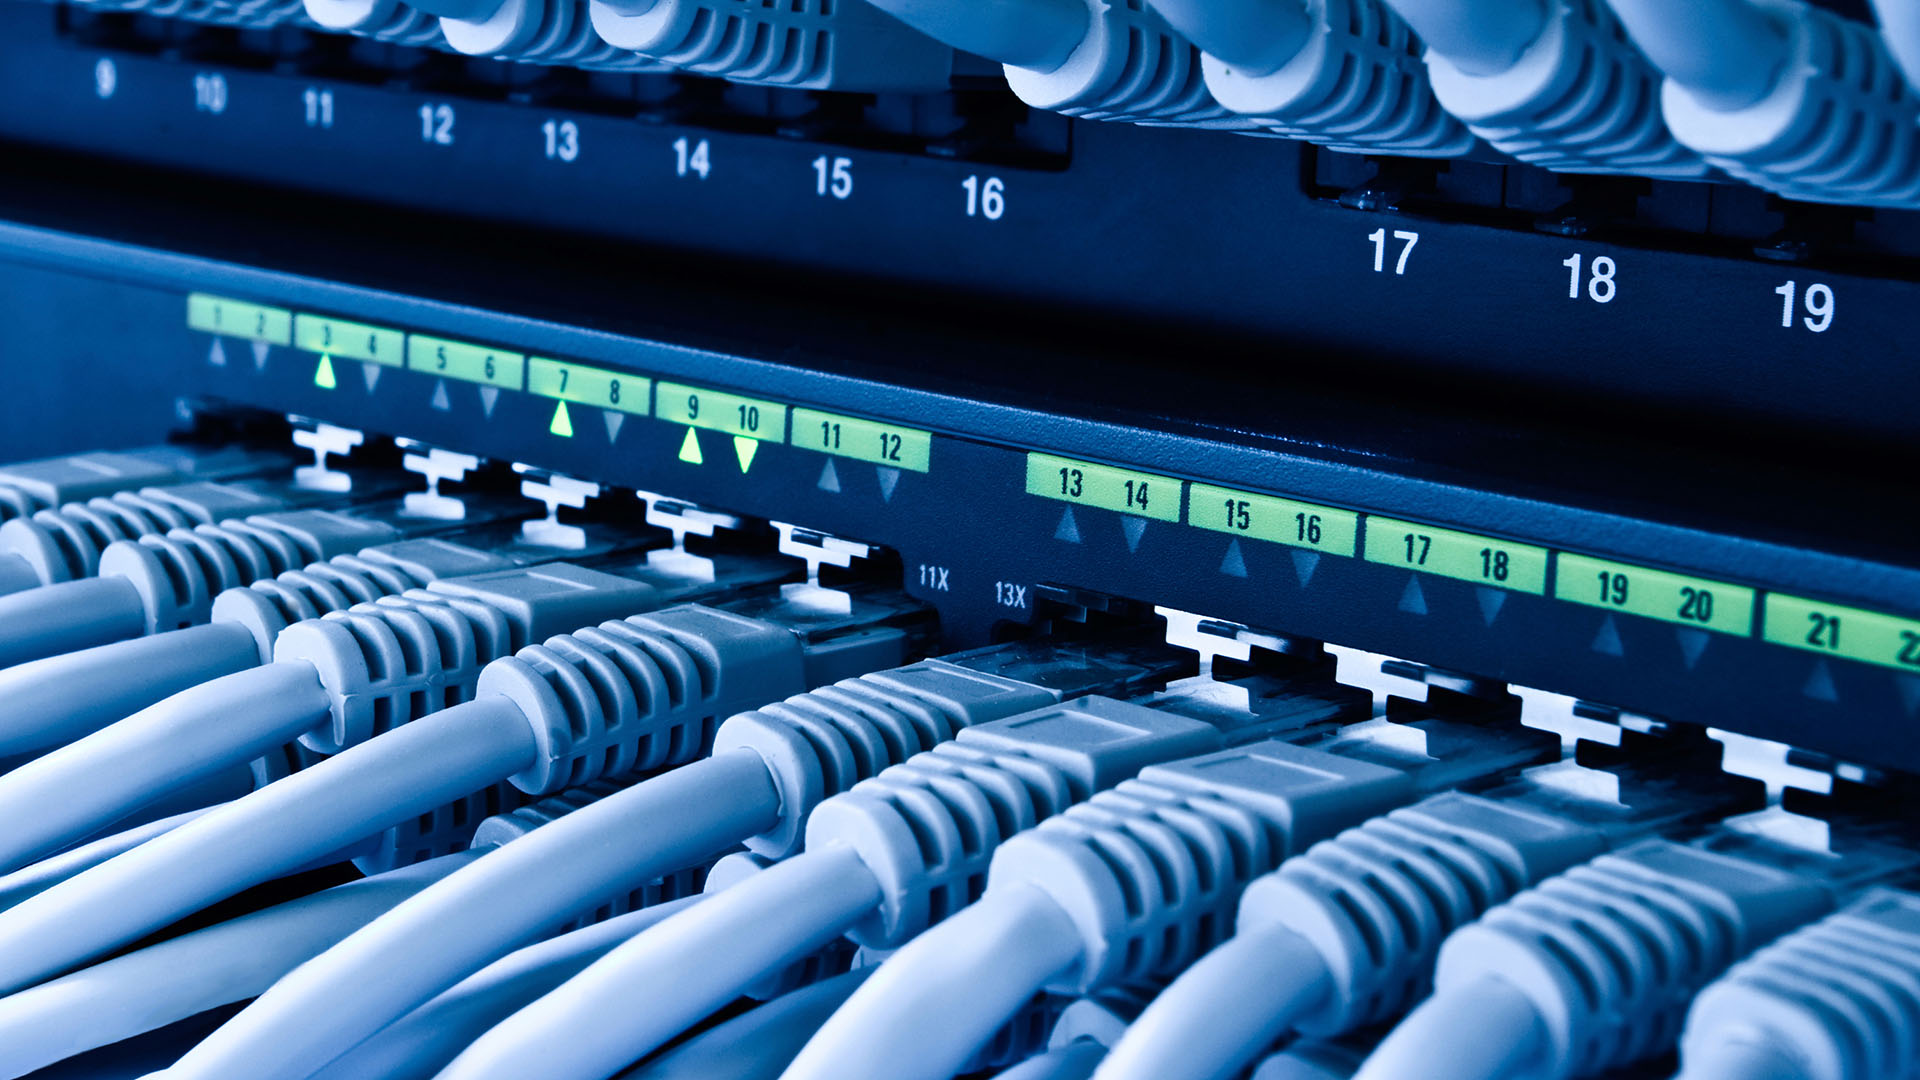 Palmetto Bay Florida Trusted Voice & Data Network Cabling Services